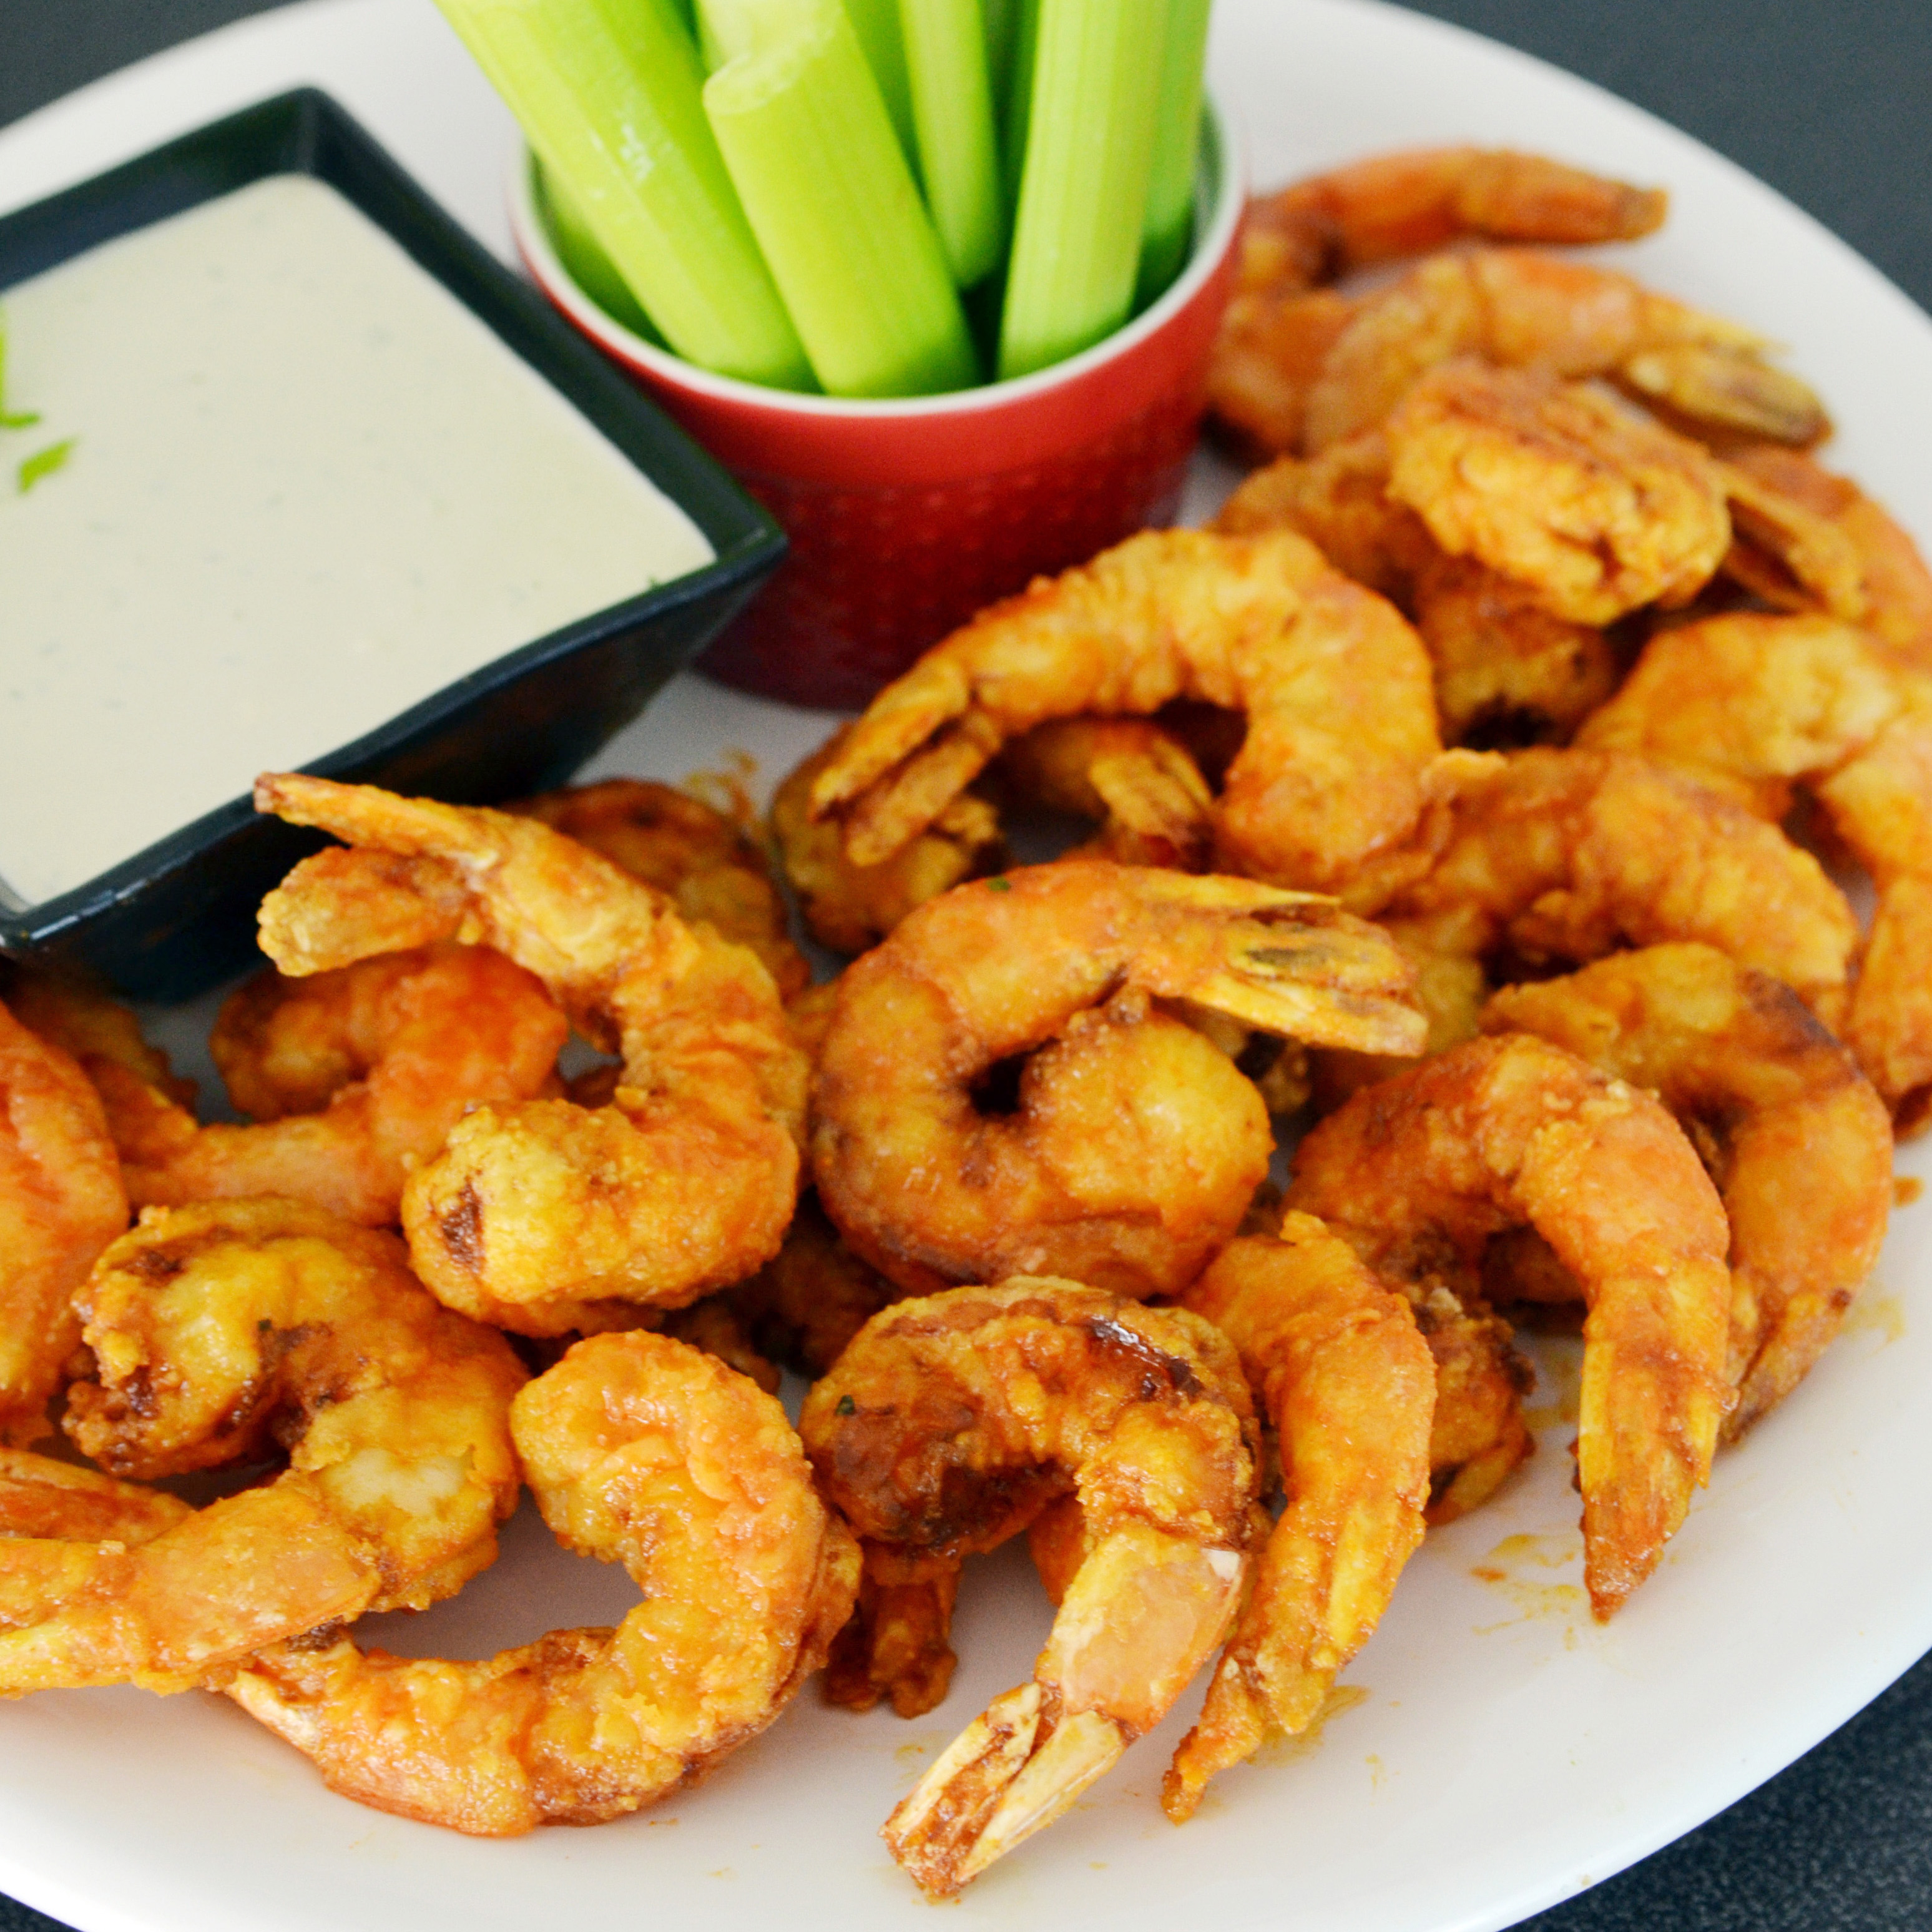 Firecracker Shrimp with Blue Cheese Dipping Sauce